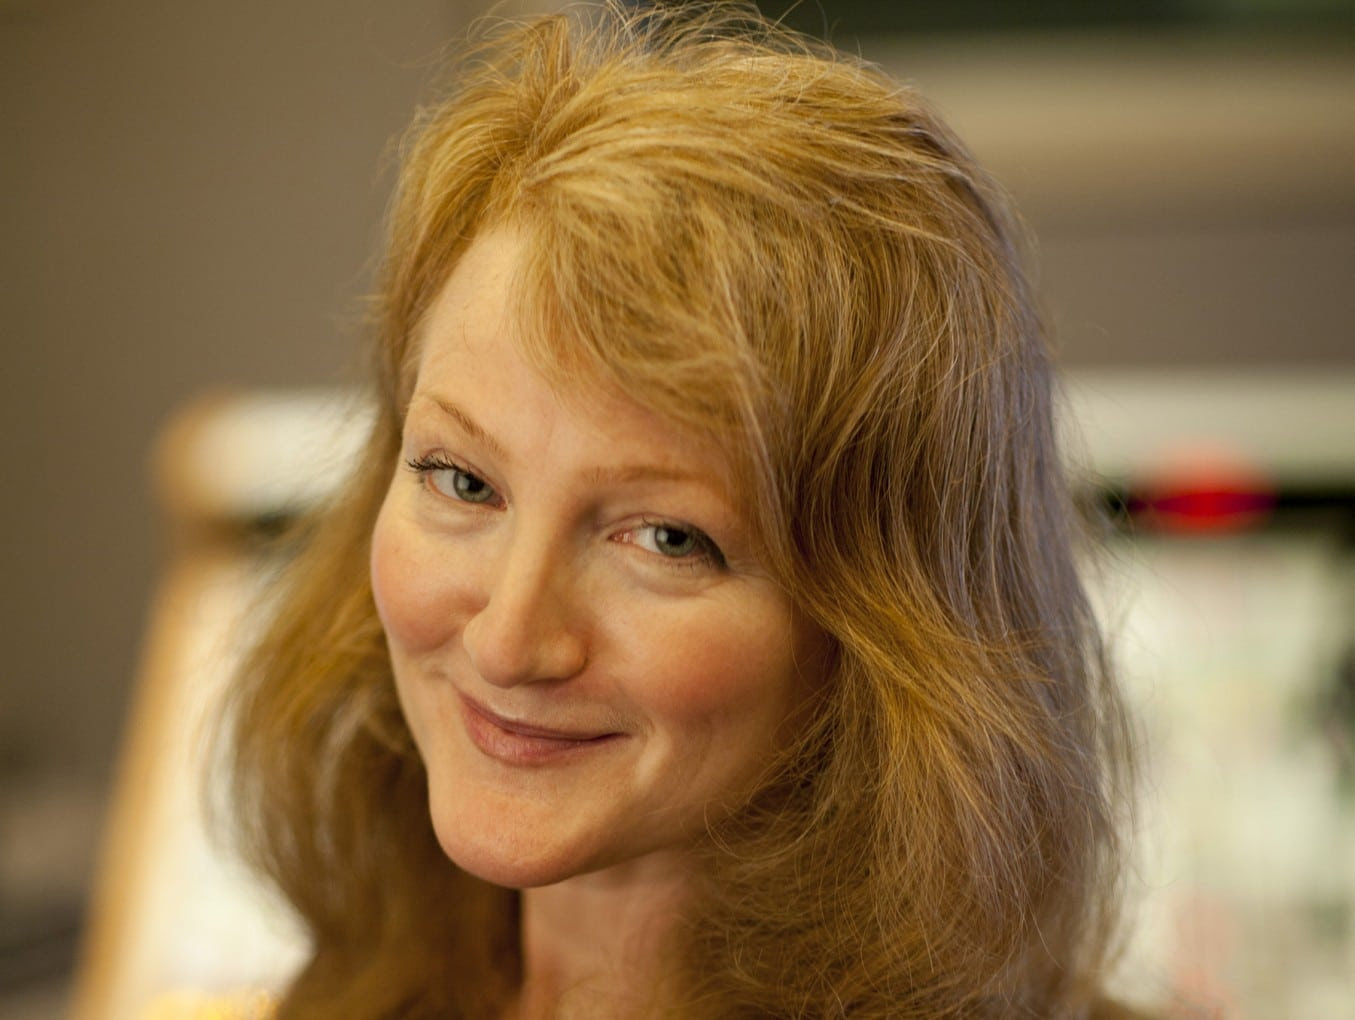 Krista Tippett: On Productivity and Protecting Space for Deep Thinking and Reflection